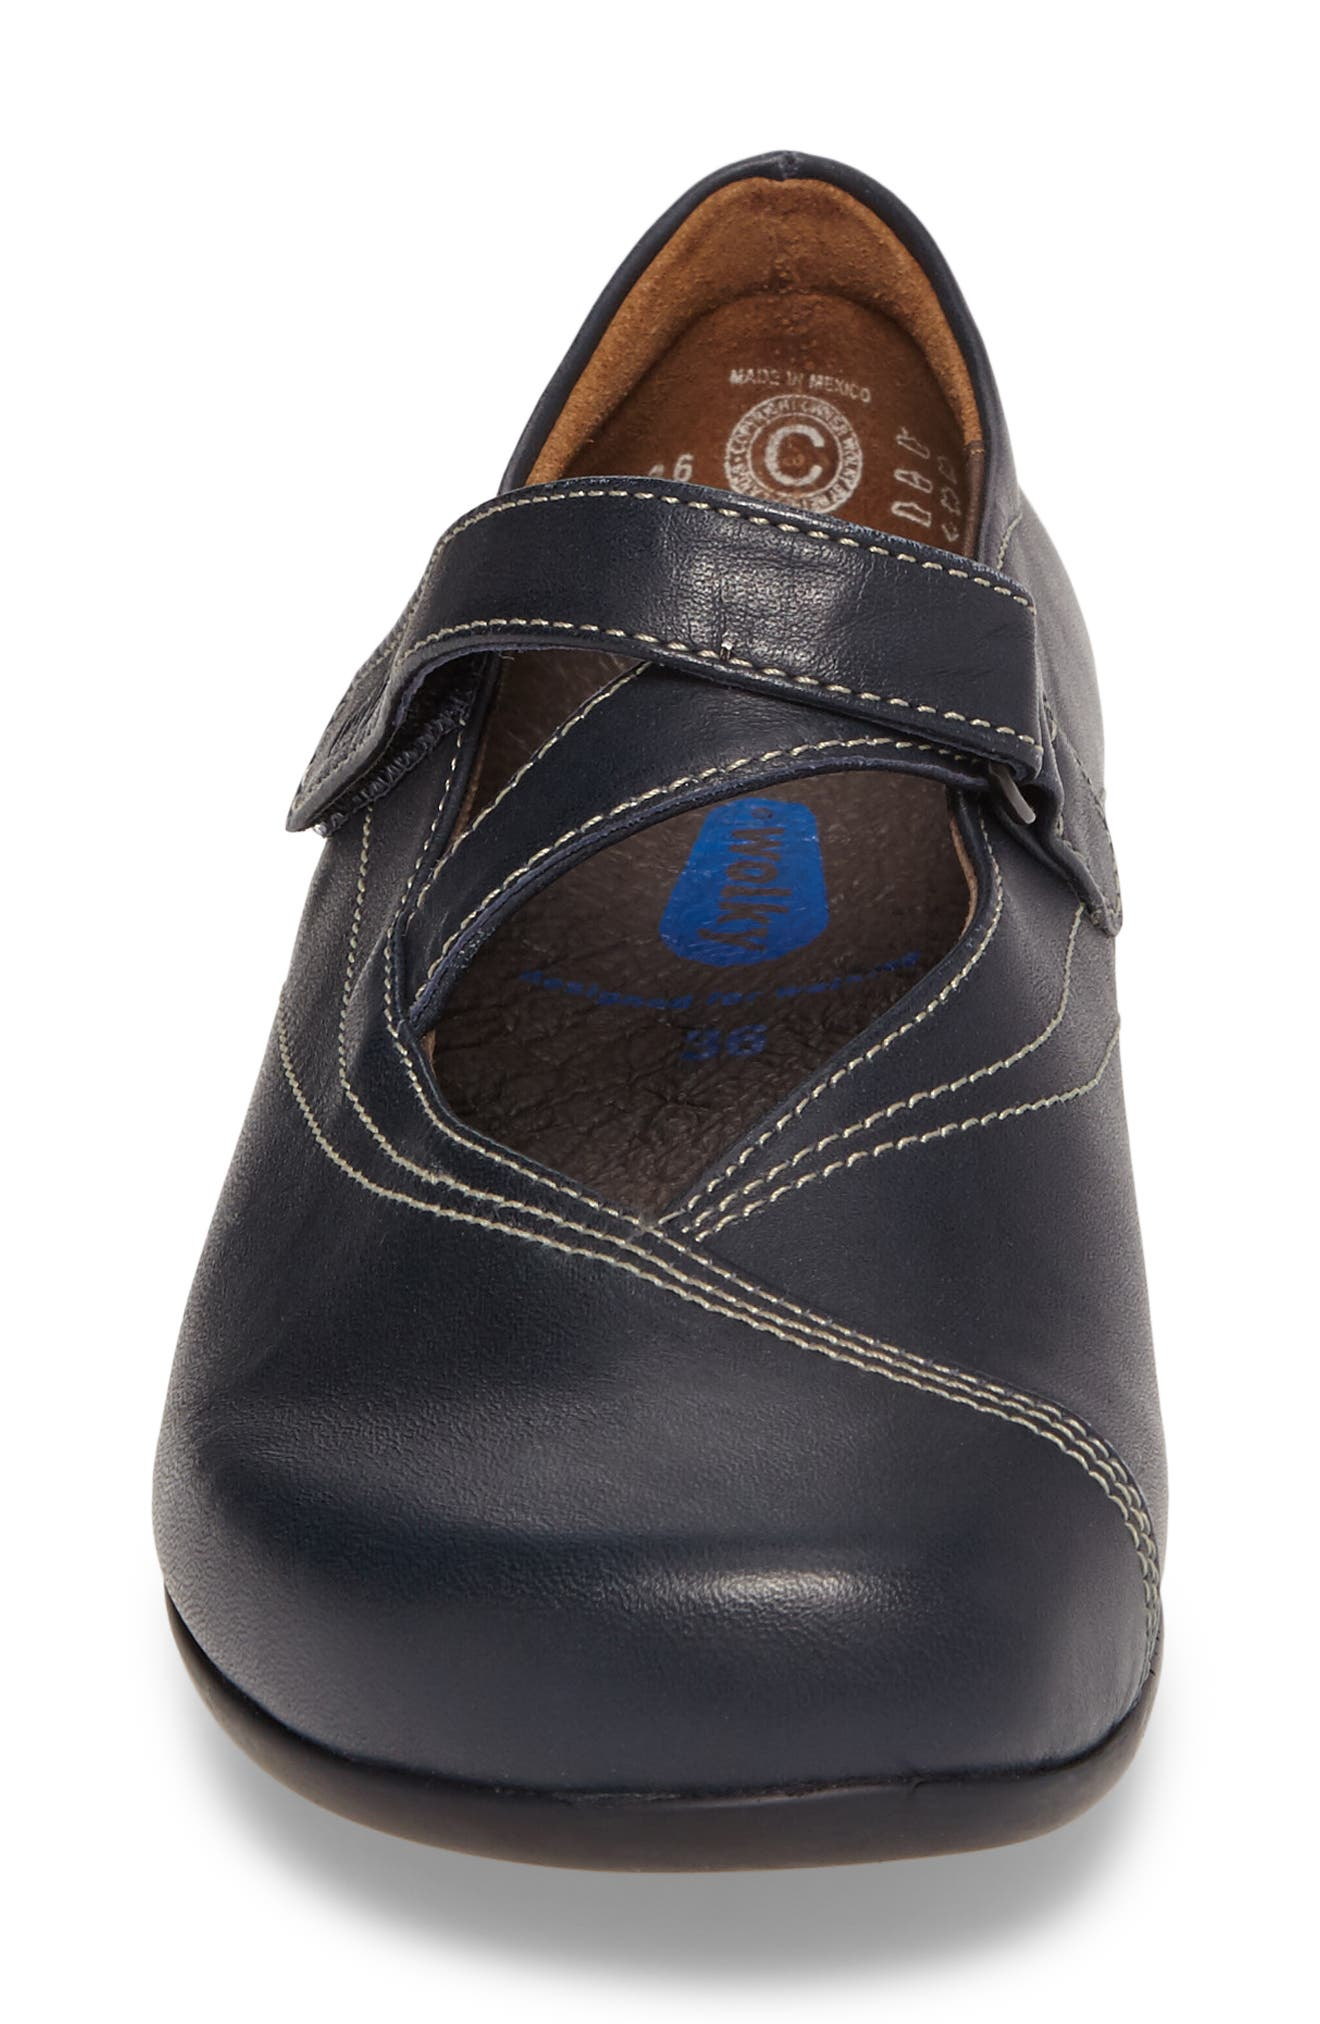 WOLKY,                             Passion Mary Jane Flat,                             Alternate thumbnail 4, color,                             NAVY LEATHER